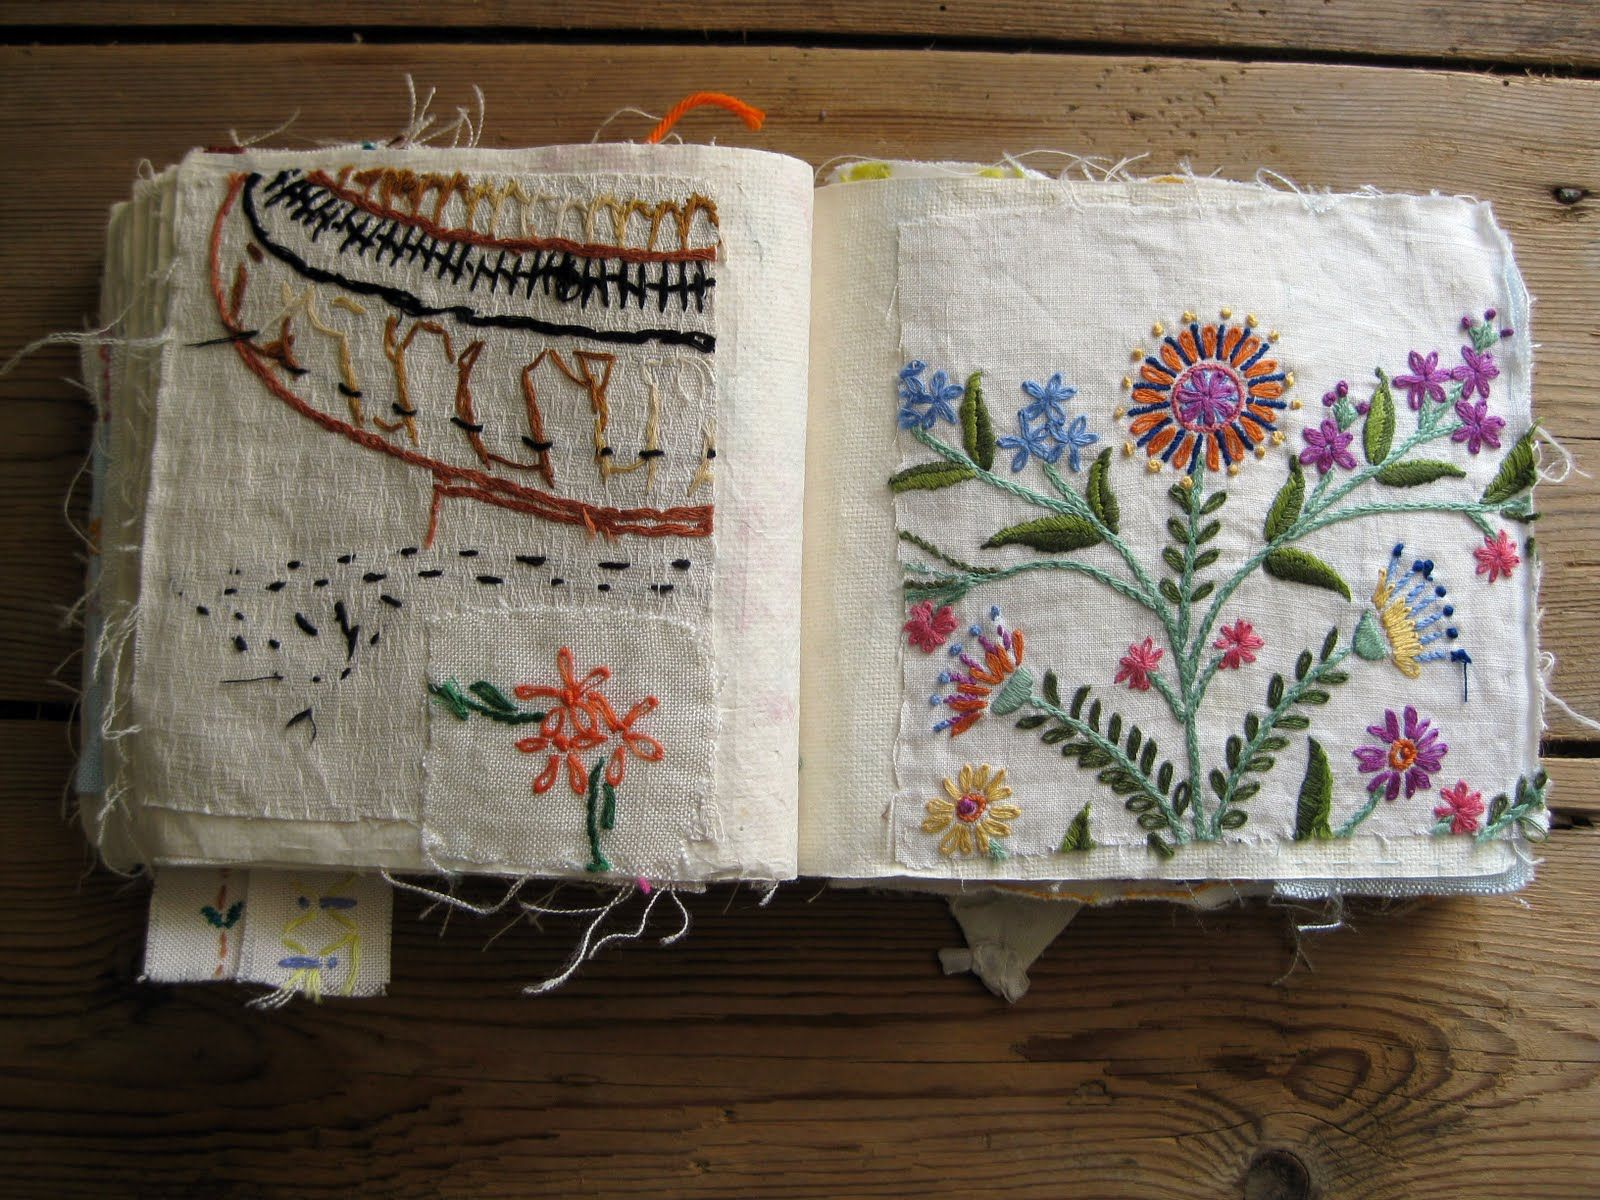 Pieces of old domestic hand embroidery sewn into a stitch